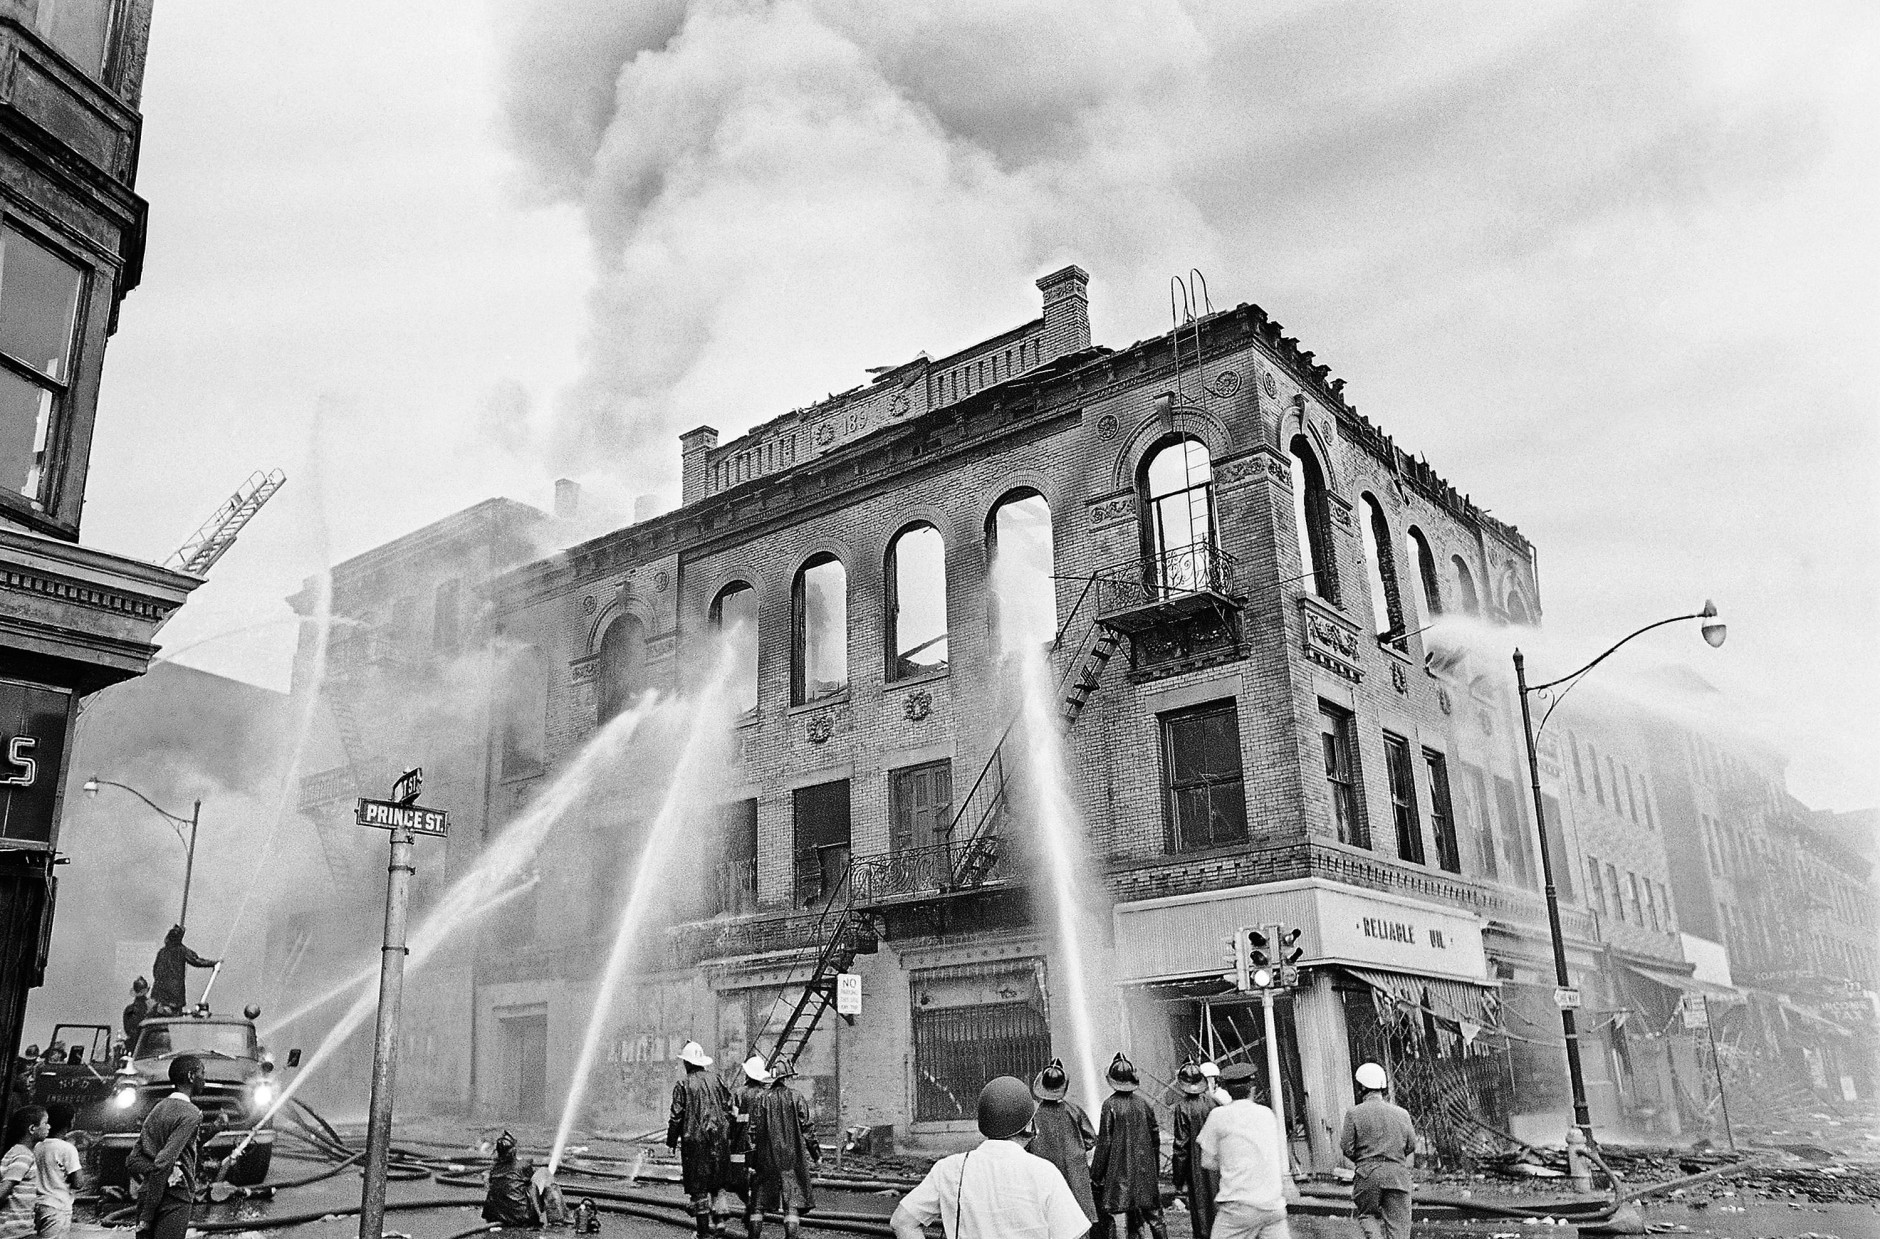 Newark firemen play steady streams of water on gutted structure at Court and Prince Streets in Newark, N.J., July 15, 1967. Three days of burning and violence have cost the New Jersey city 11 dead and hundreds wounded. (AP Photo/Marty Lederhandler)